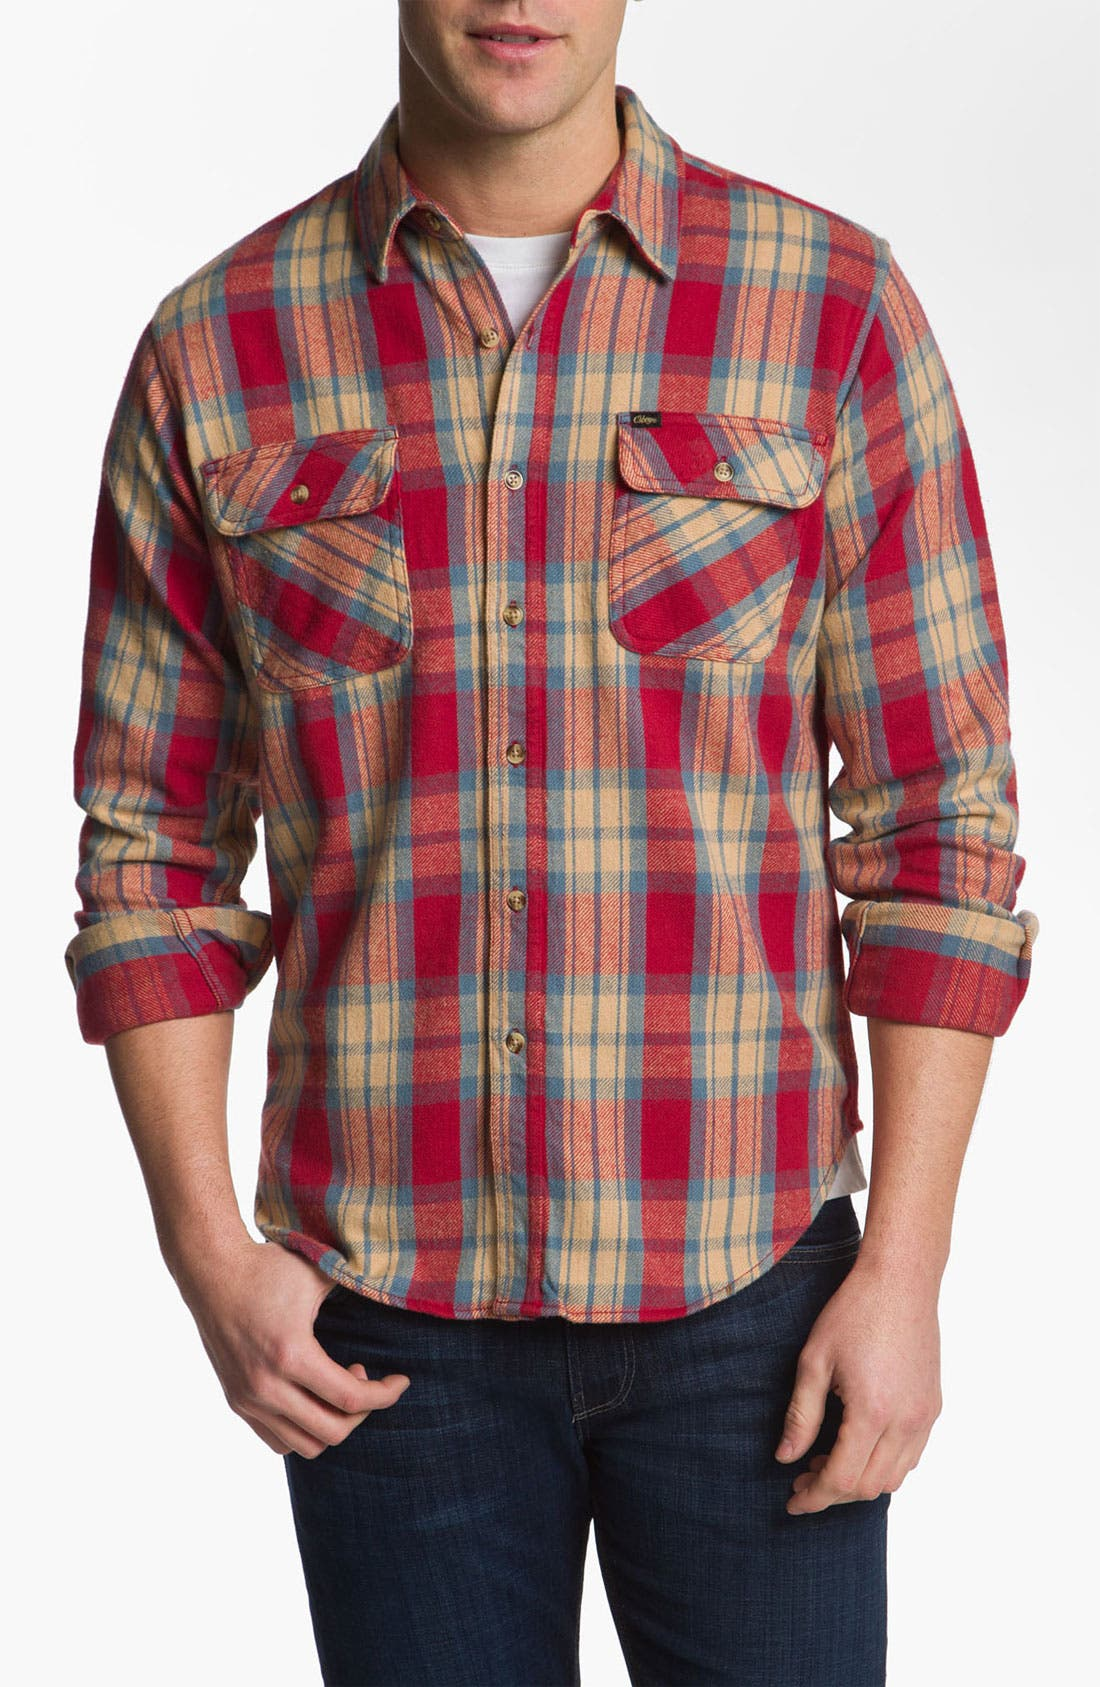 Alternate Image 1 Selected - Obey 'Merrick' Woven Plaid Shirt